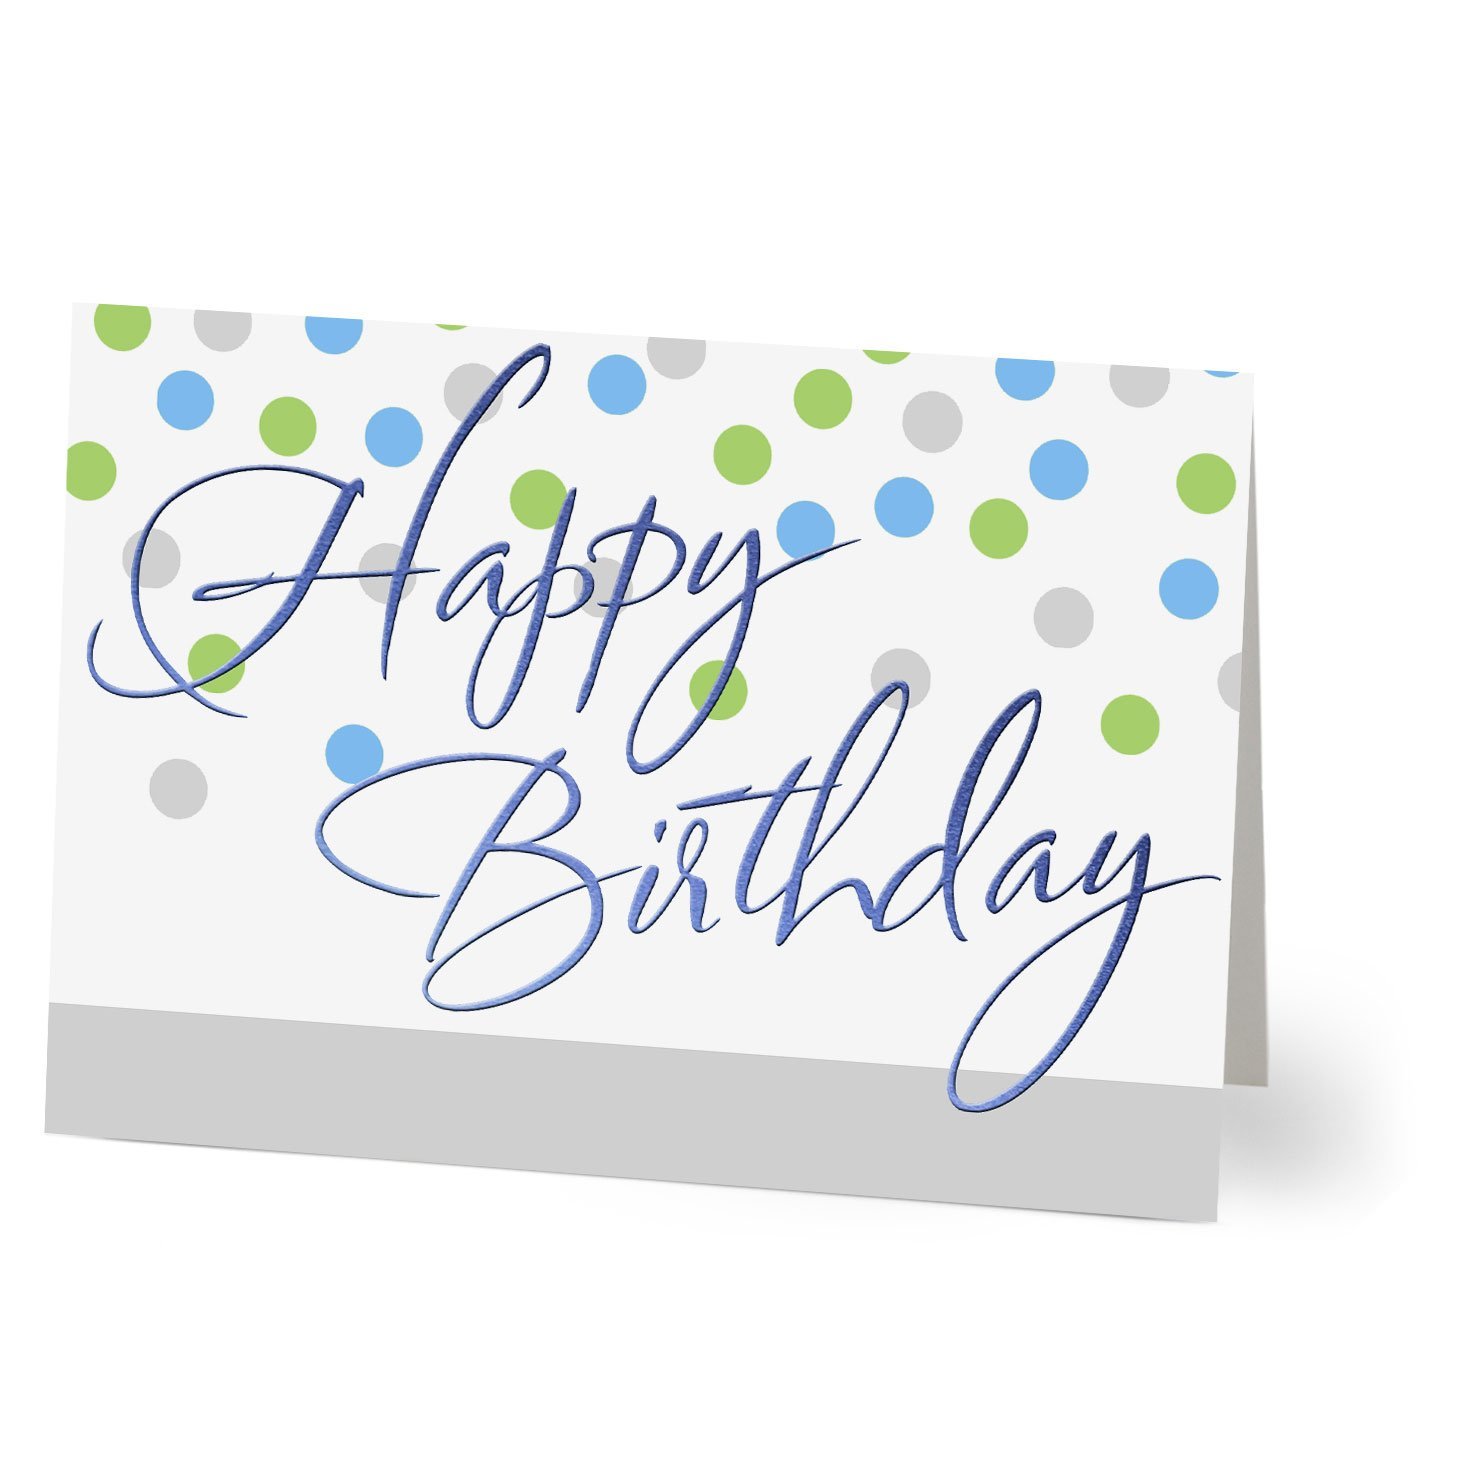 Hallmark Business Birthday Card for Employees (Birthday Dots) (Pack of 25 Greeting Cards)